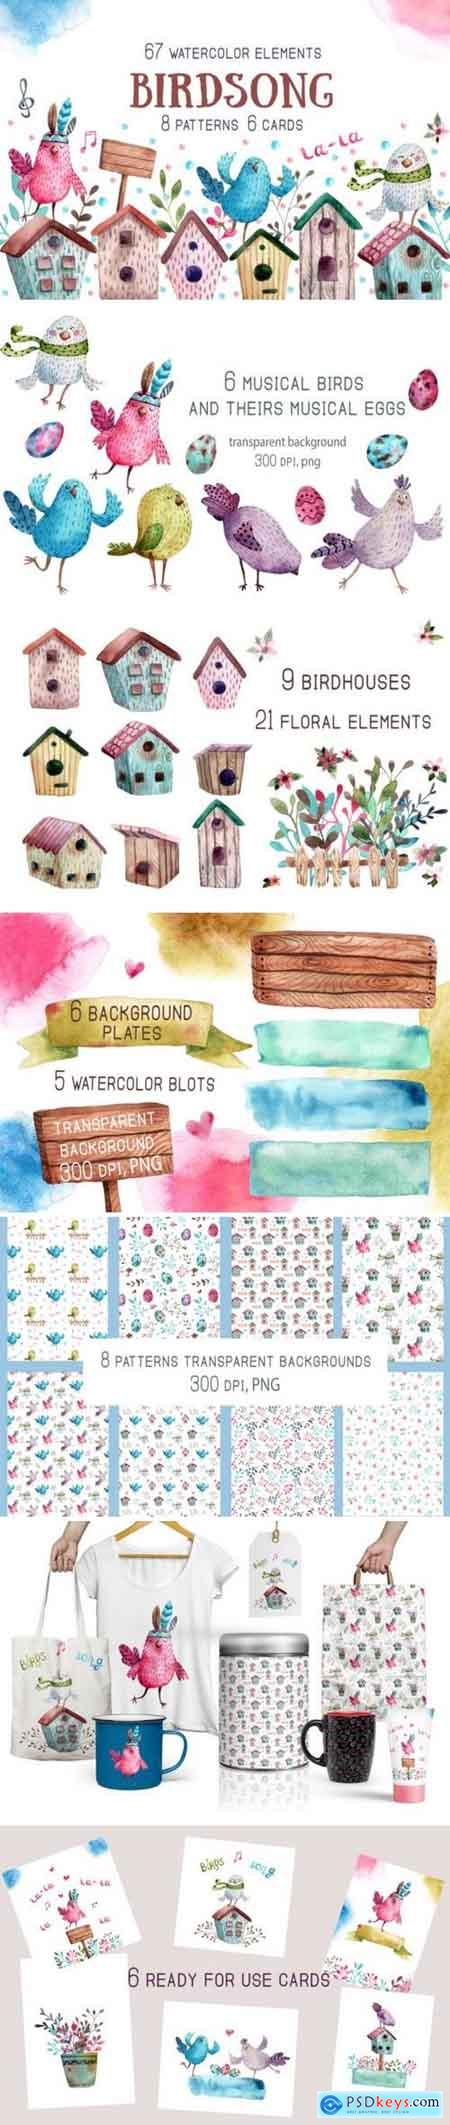 Creativemarket Birdsong - Watercolor Clip Art Set